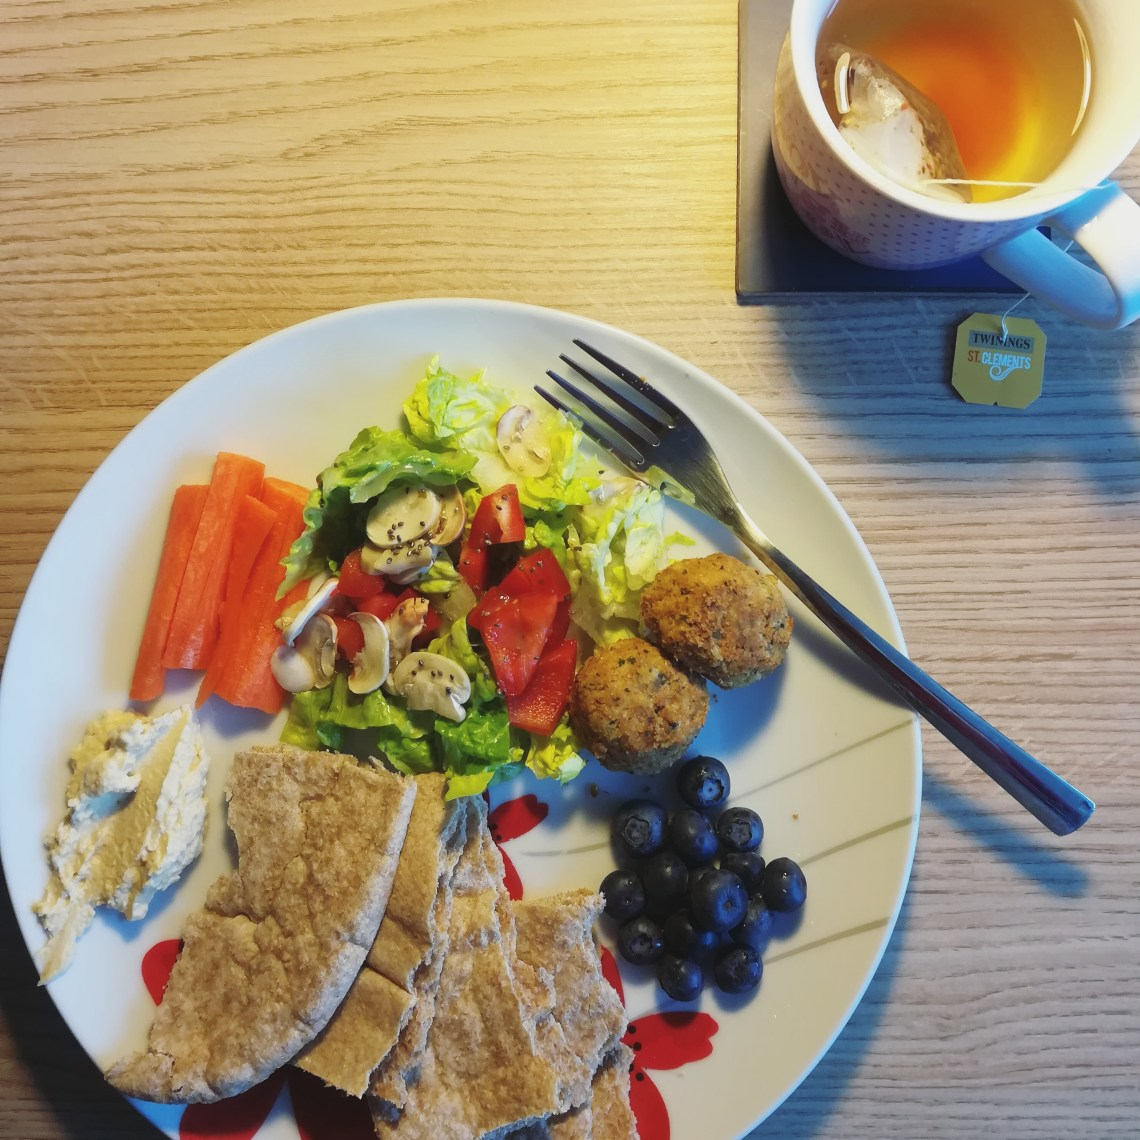 A vegan lunch made up of pitta, salad, carrot, houmous, blueberries and falafel